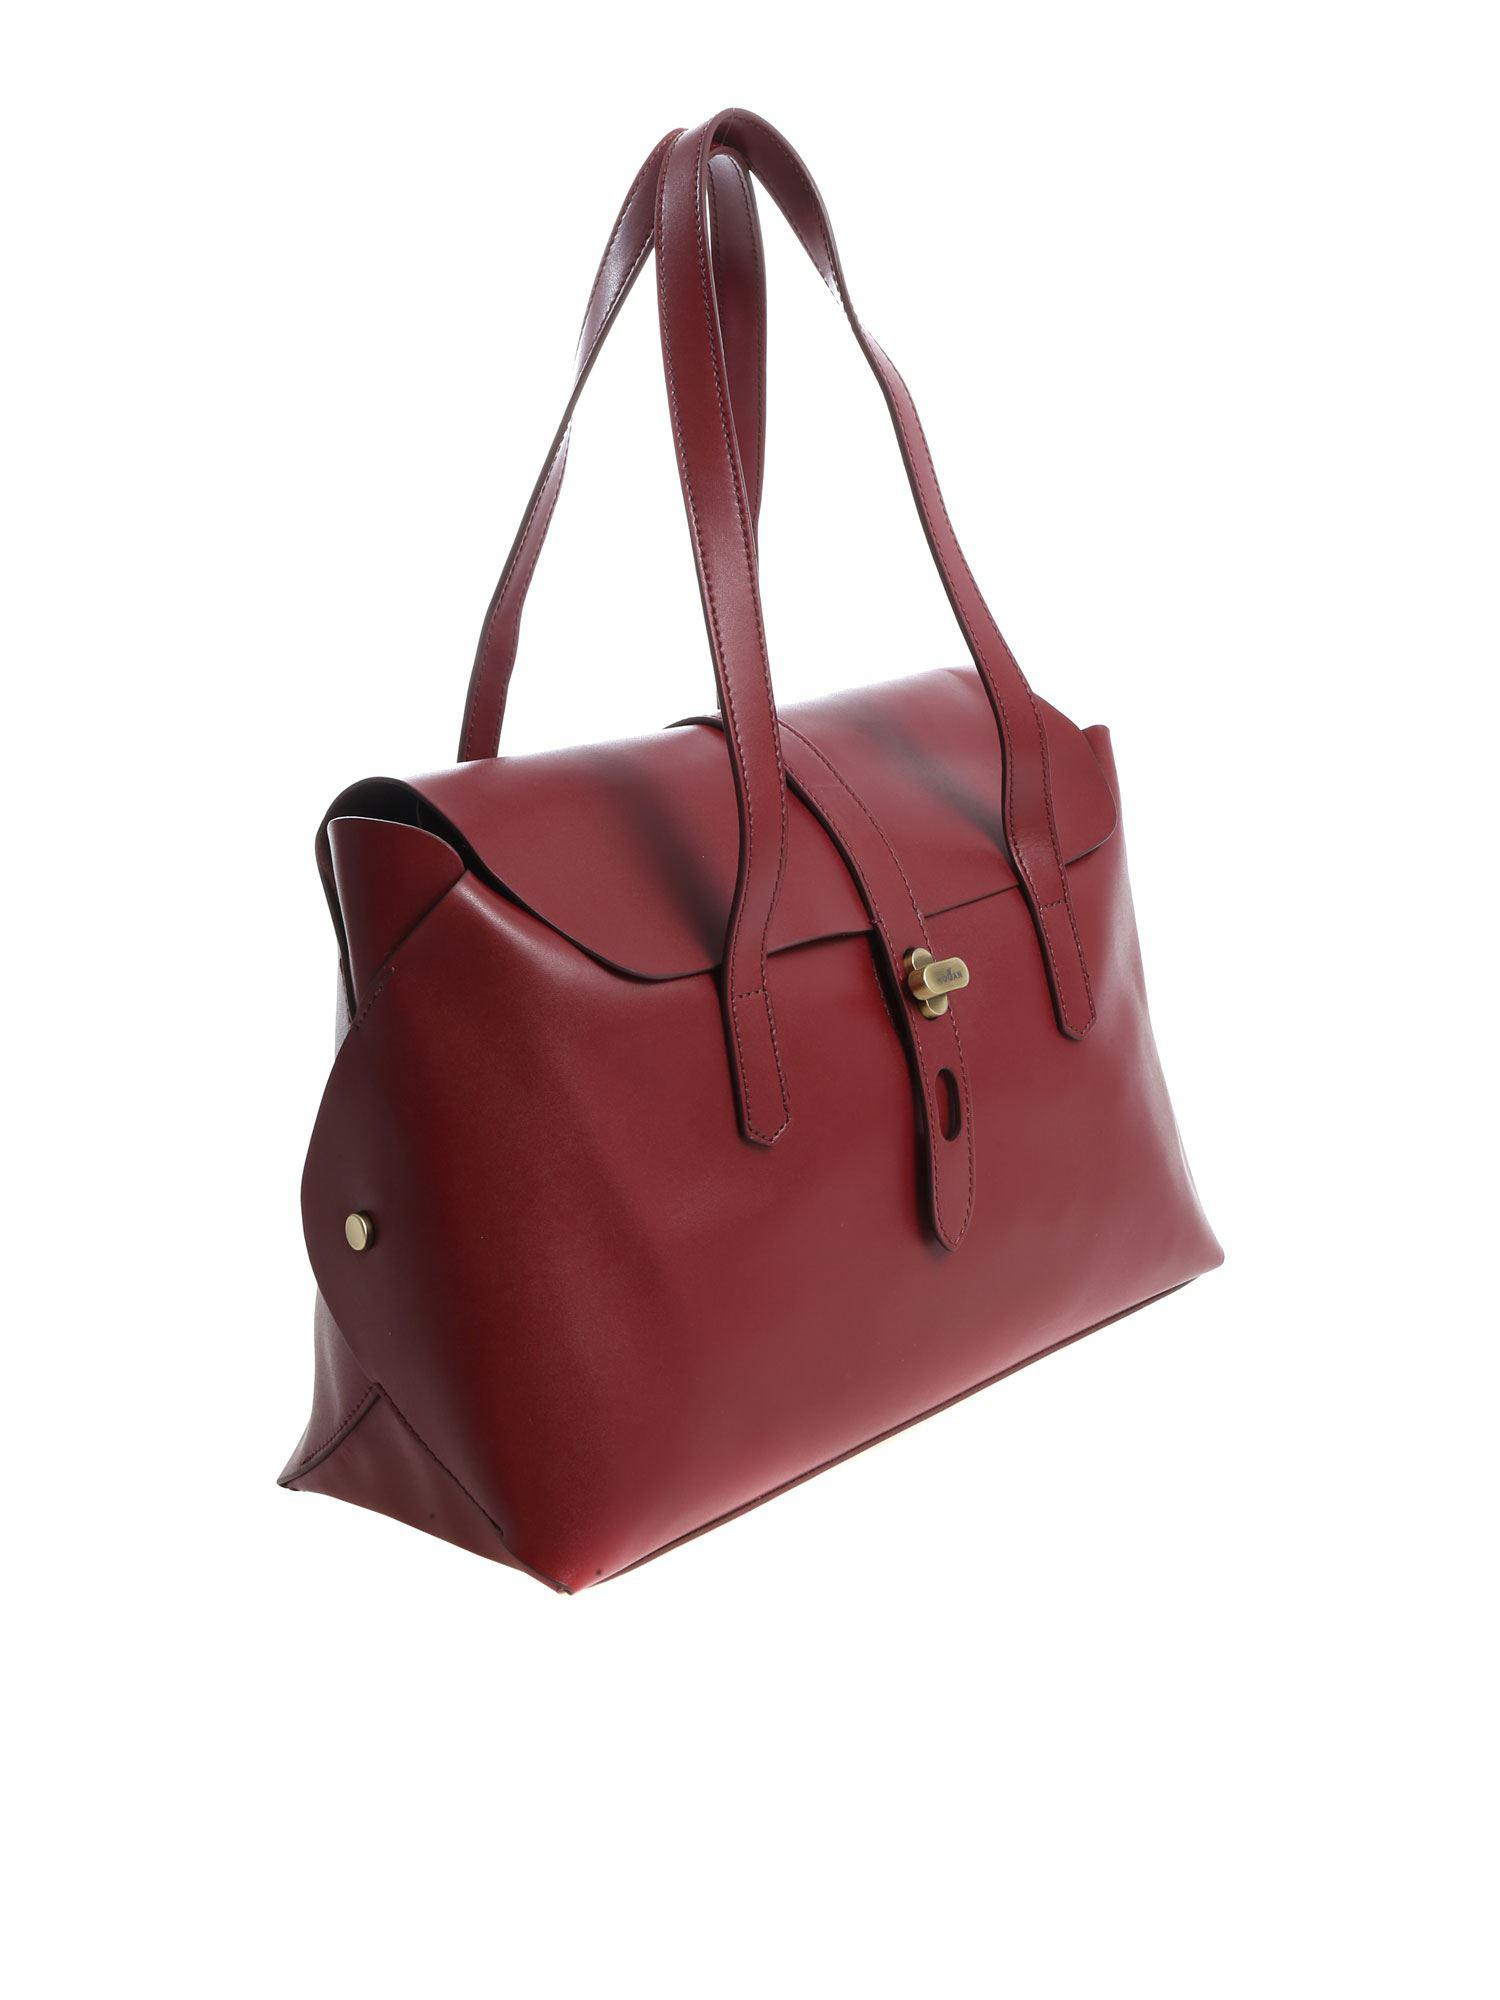 Hogan - Red Burgundy Shoulder Bag With Flap - Lyst. View fullscreen 818fb7906a754